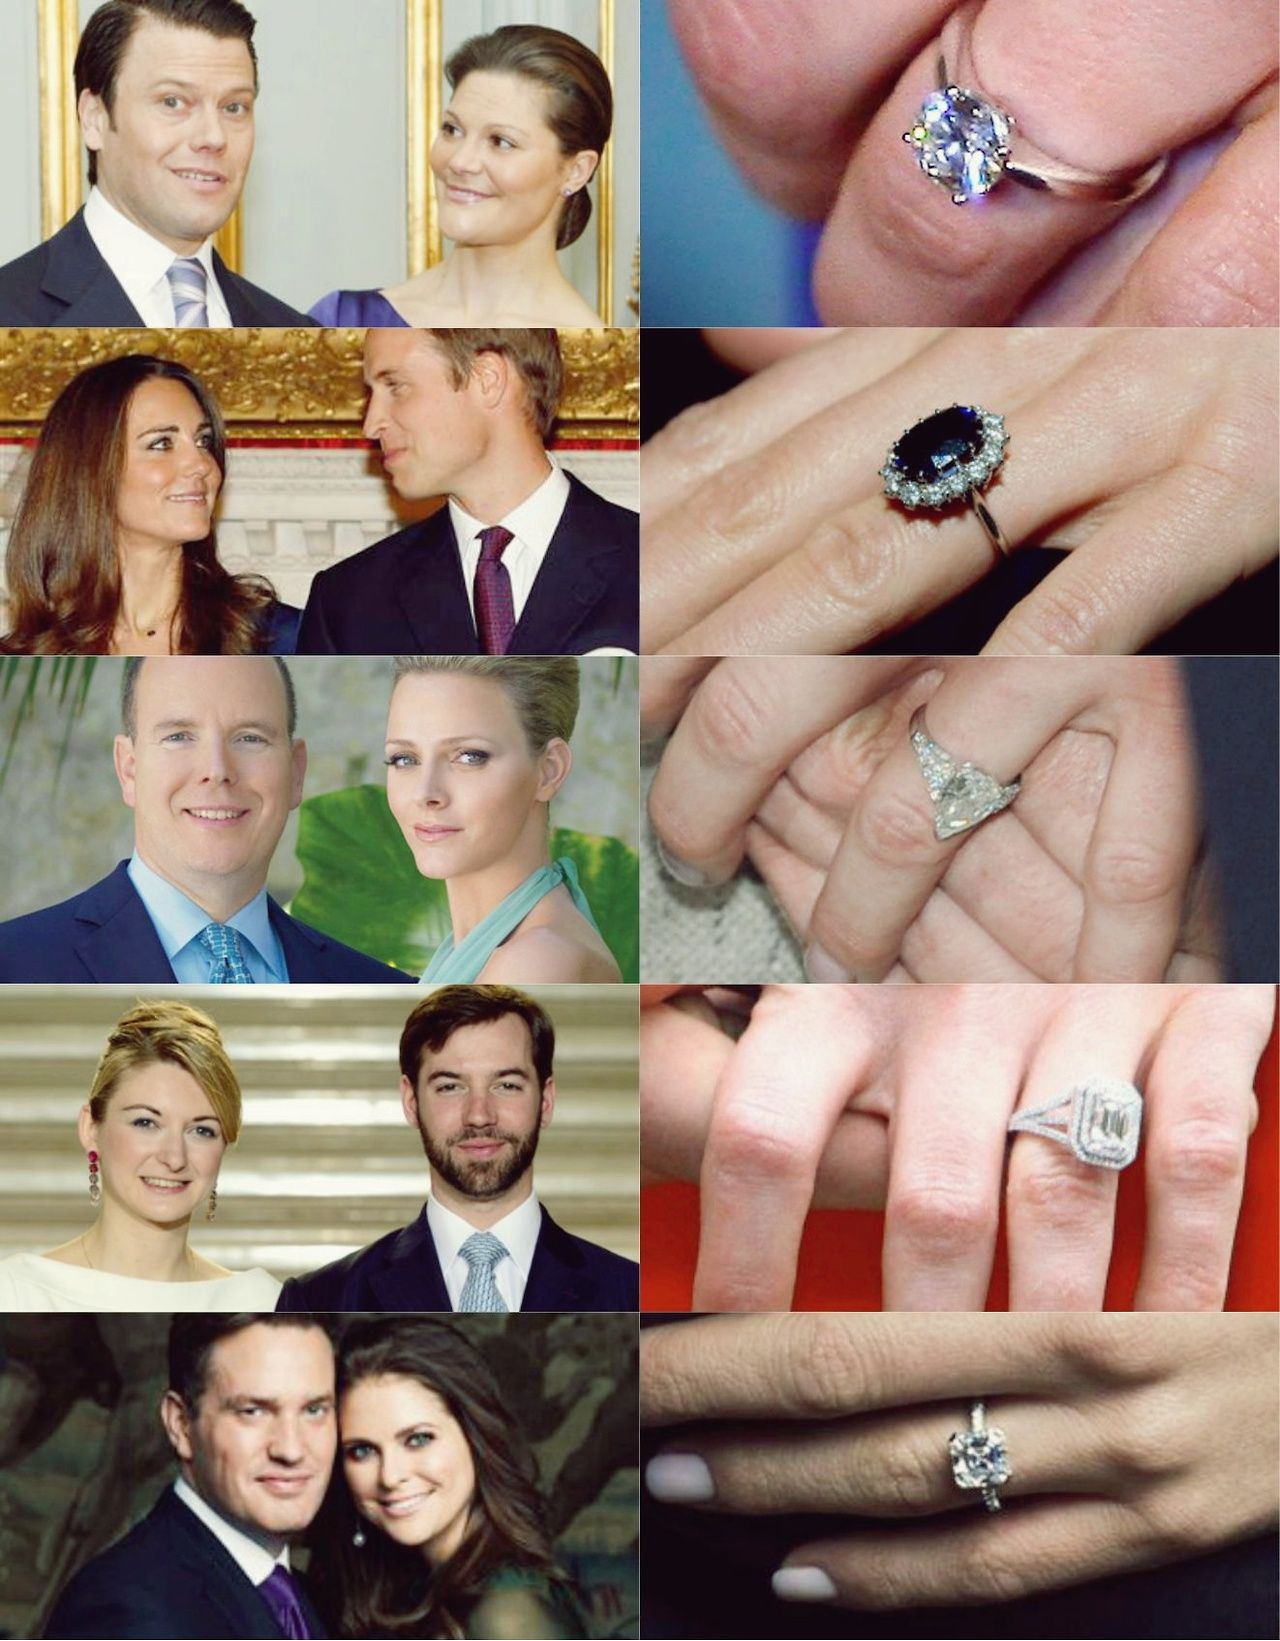 princess echo splendor marie sartorial engagement for the colors royalty flag fianc ring flashback french royal wanted blech worst supposedly friday order his of to joachim rings